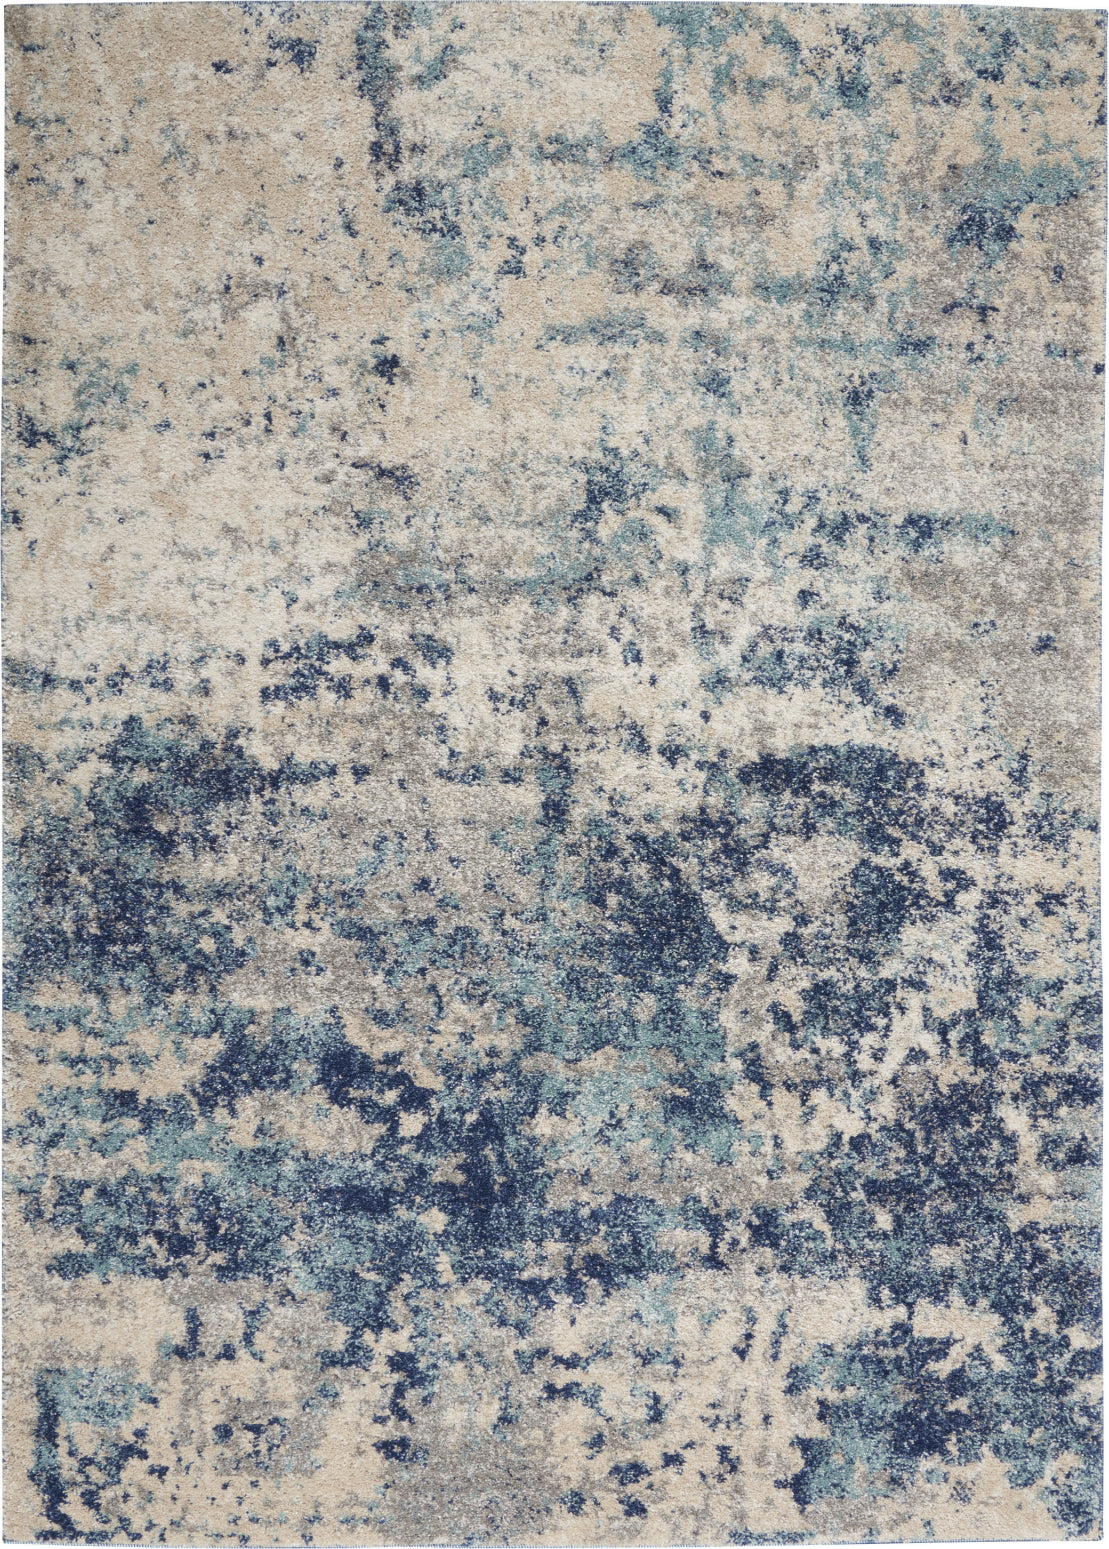 Nourison KI60 Ivory Shore KI61 Ivory/Dark Blue Area Rug by Kathy Ireland main image